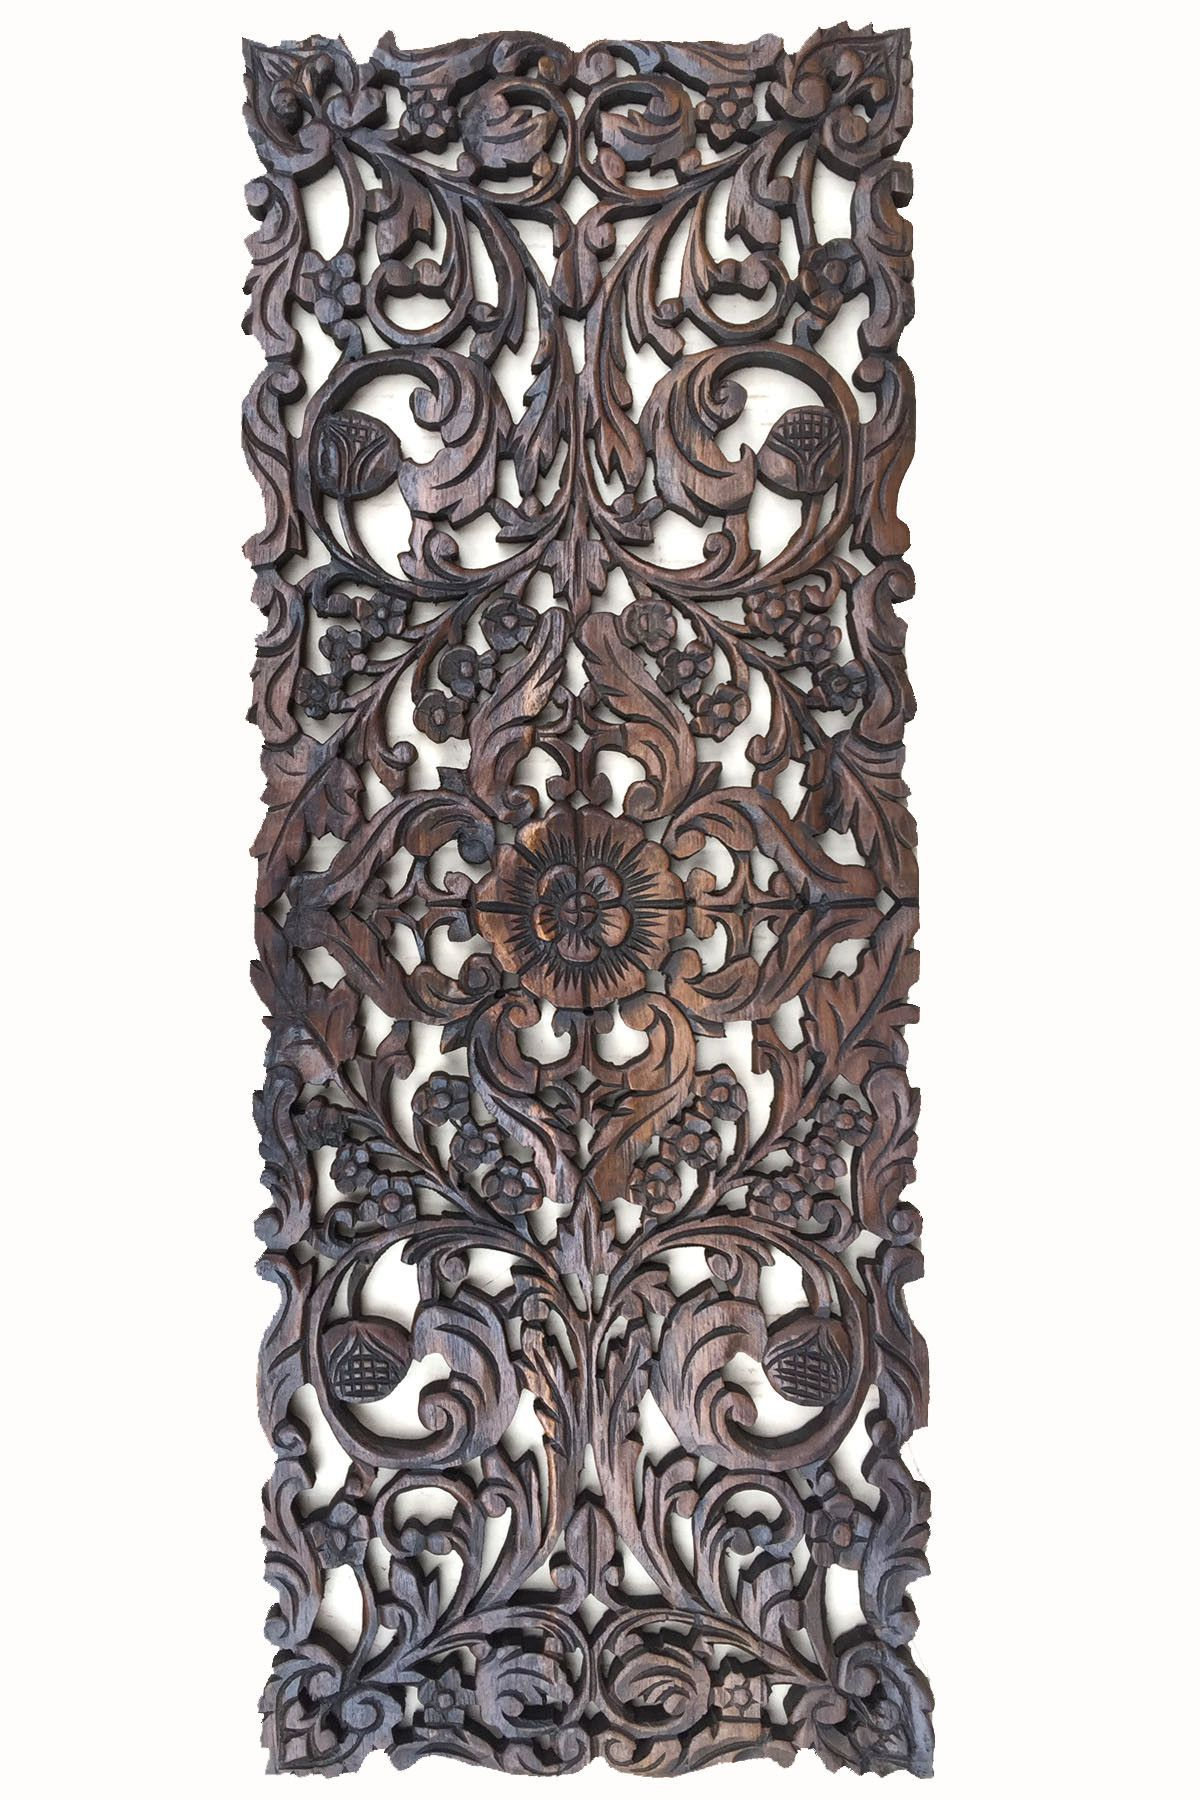 Floral wood carved wall panel asian home decor wall hanging floral wood carved wall panel asian home decor wall hanging decorative headboard relief panel amipublicfo Images